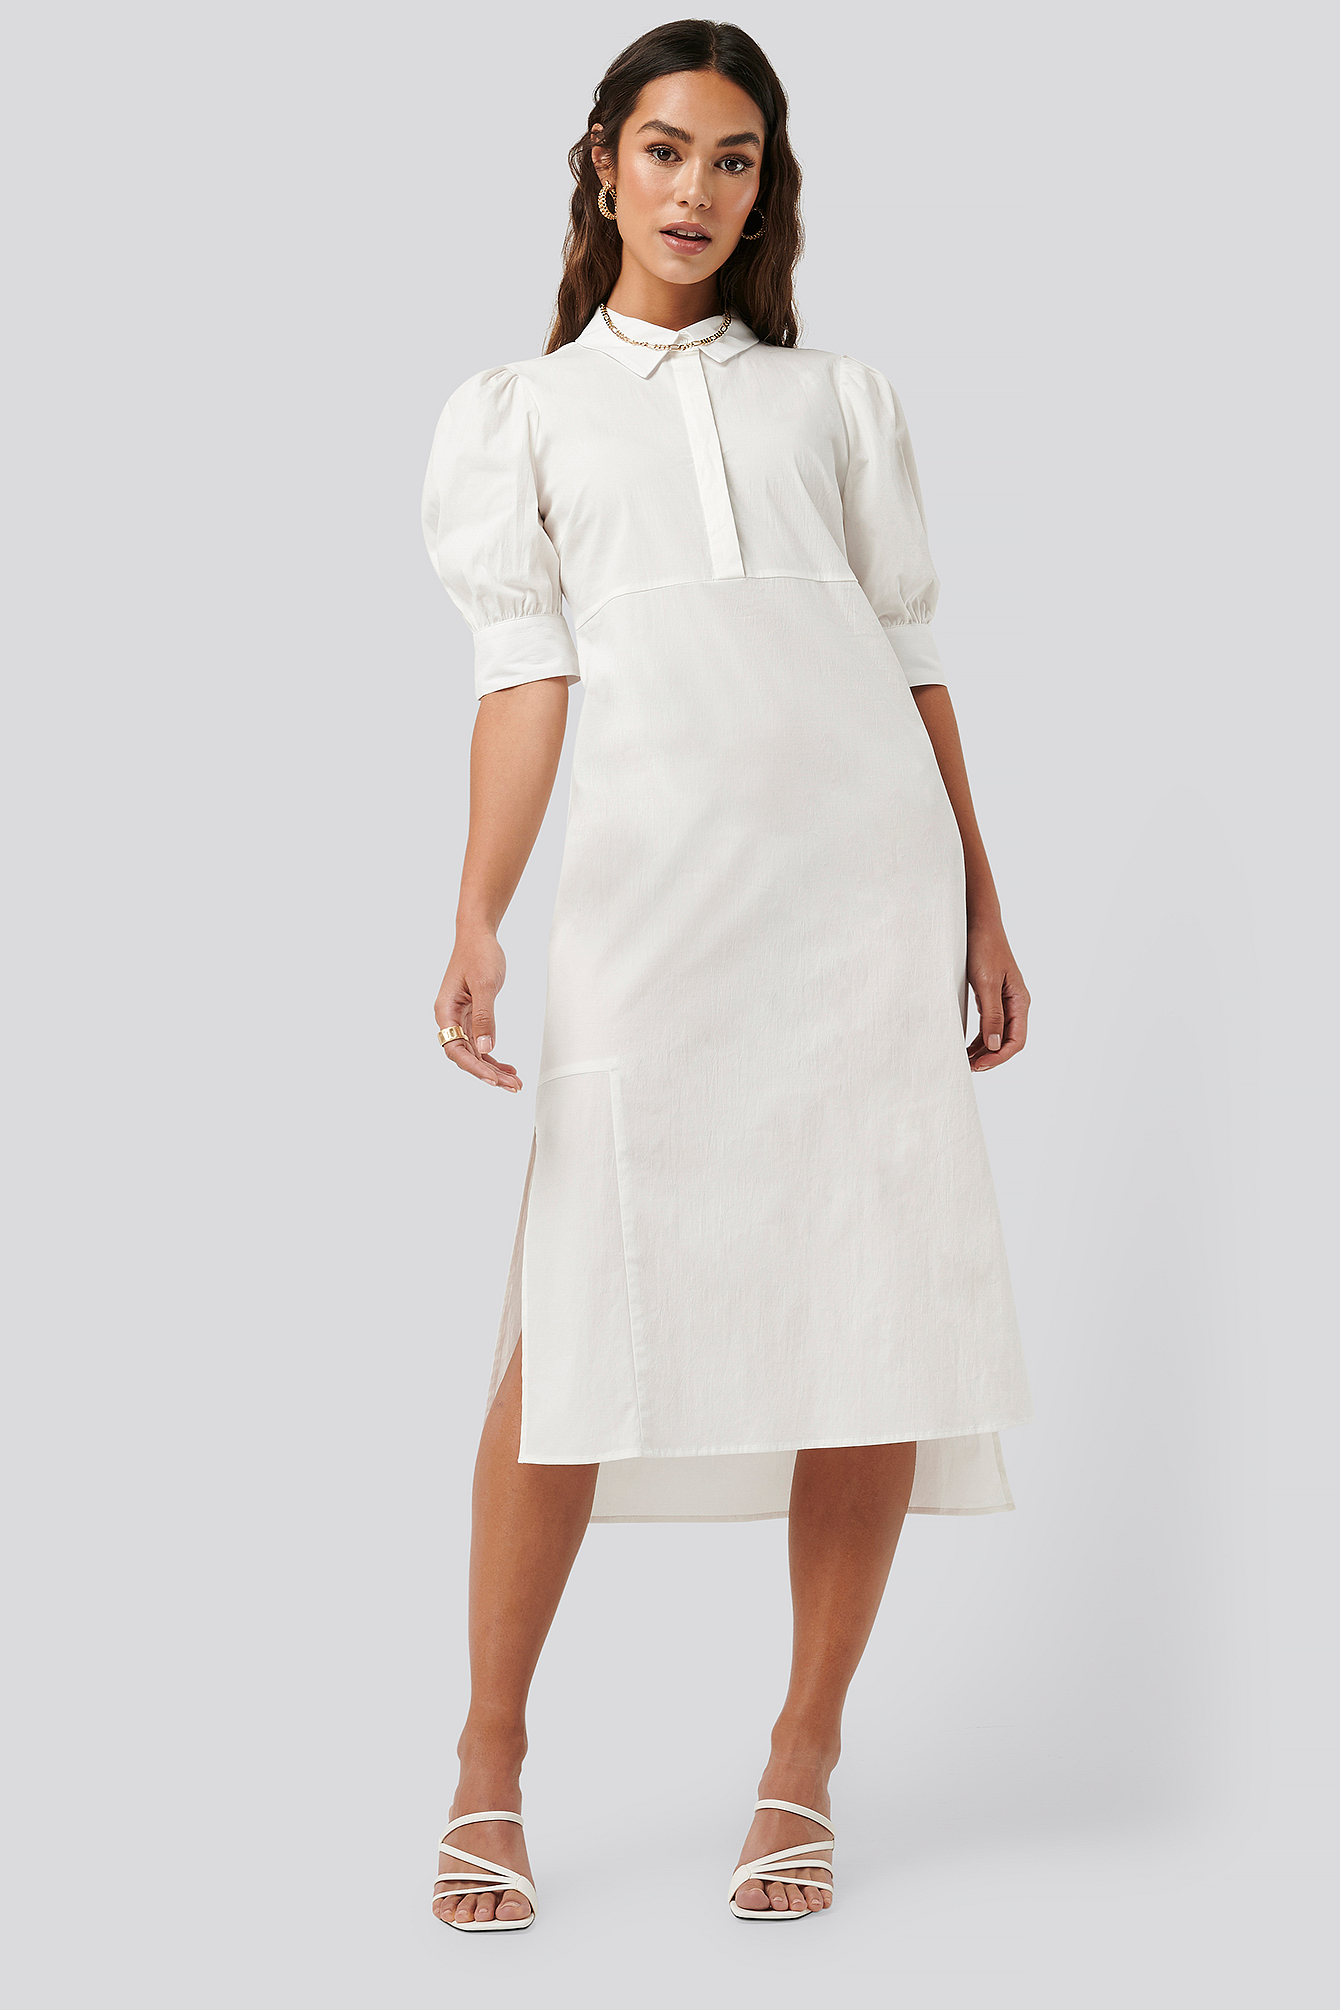 White Puff Sleeve Panel Dress